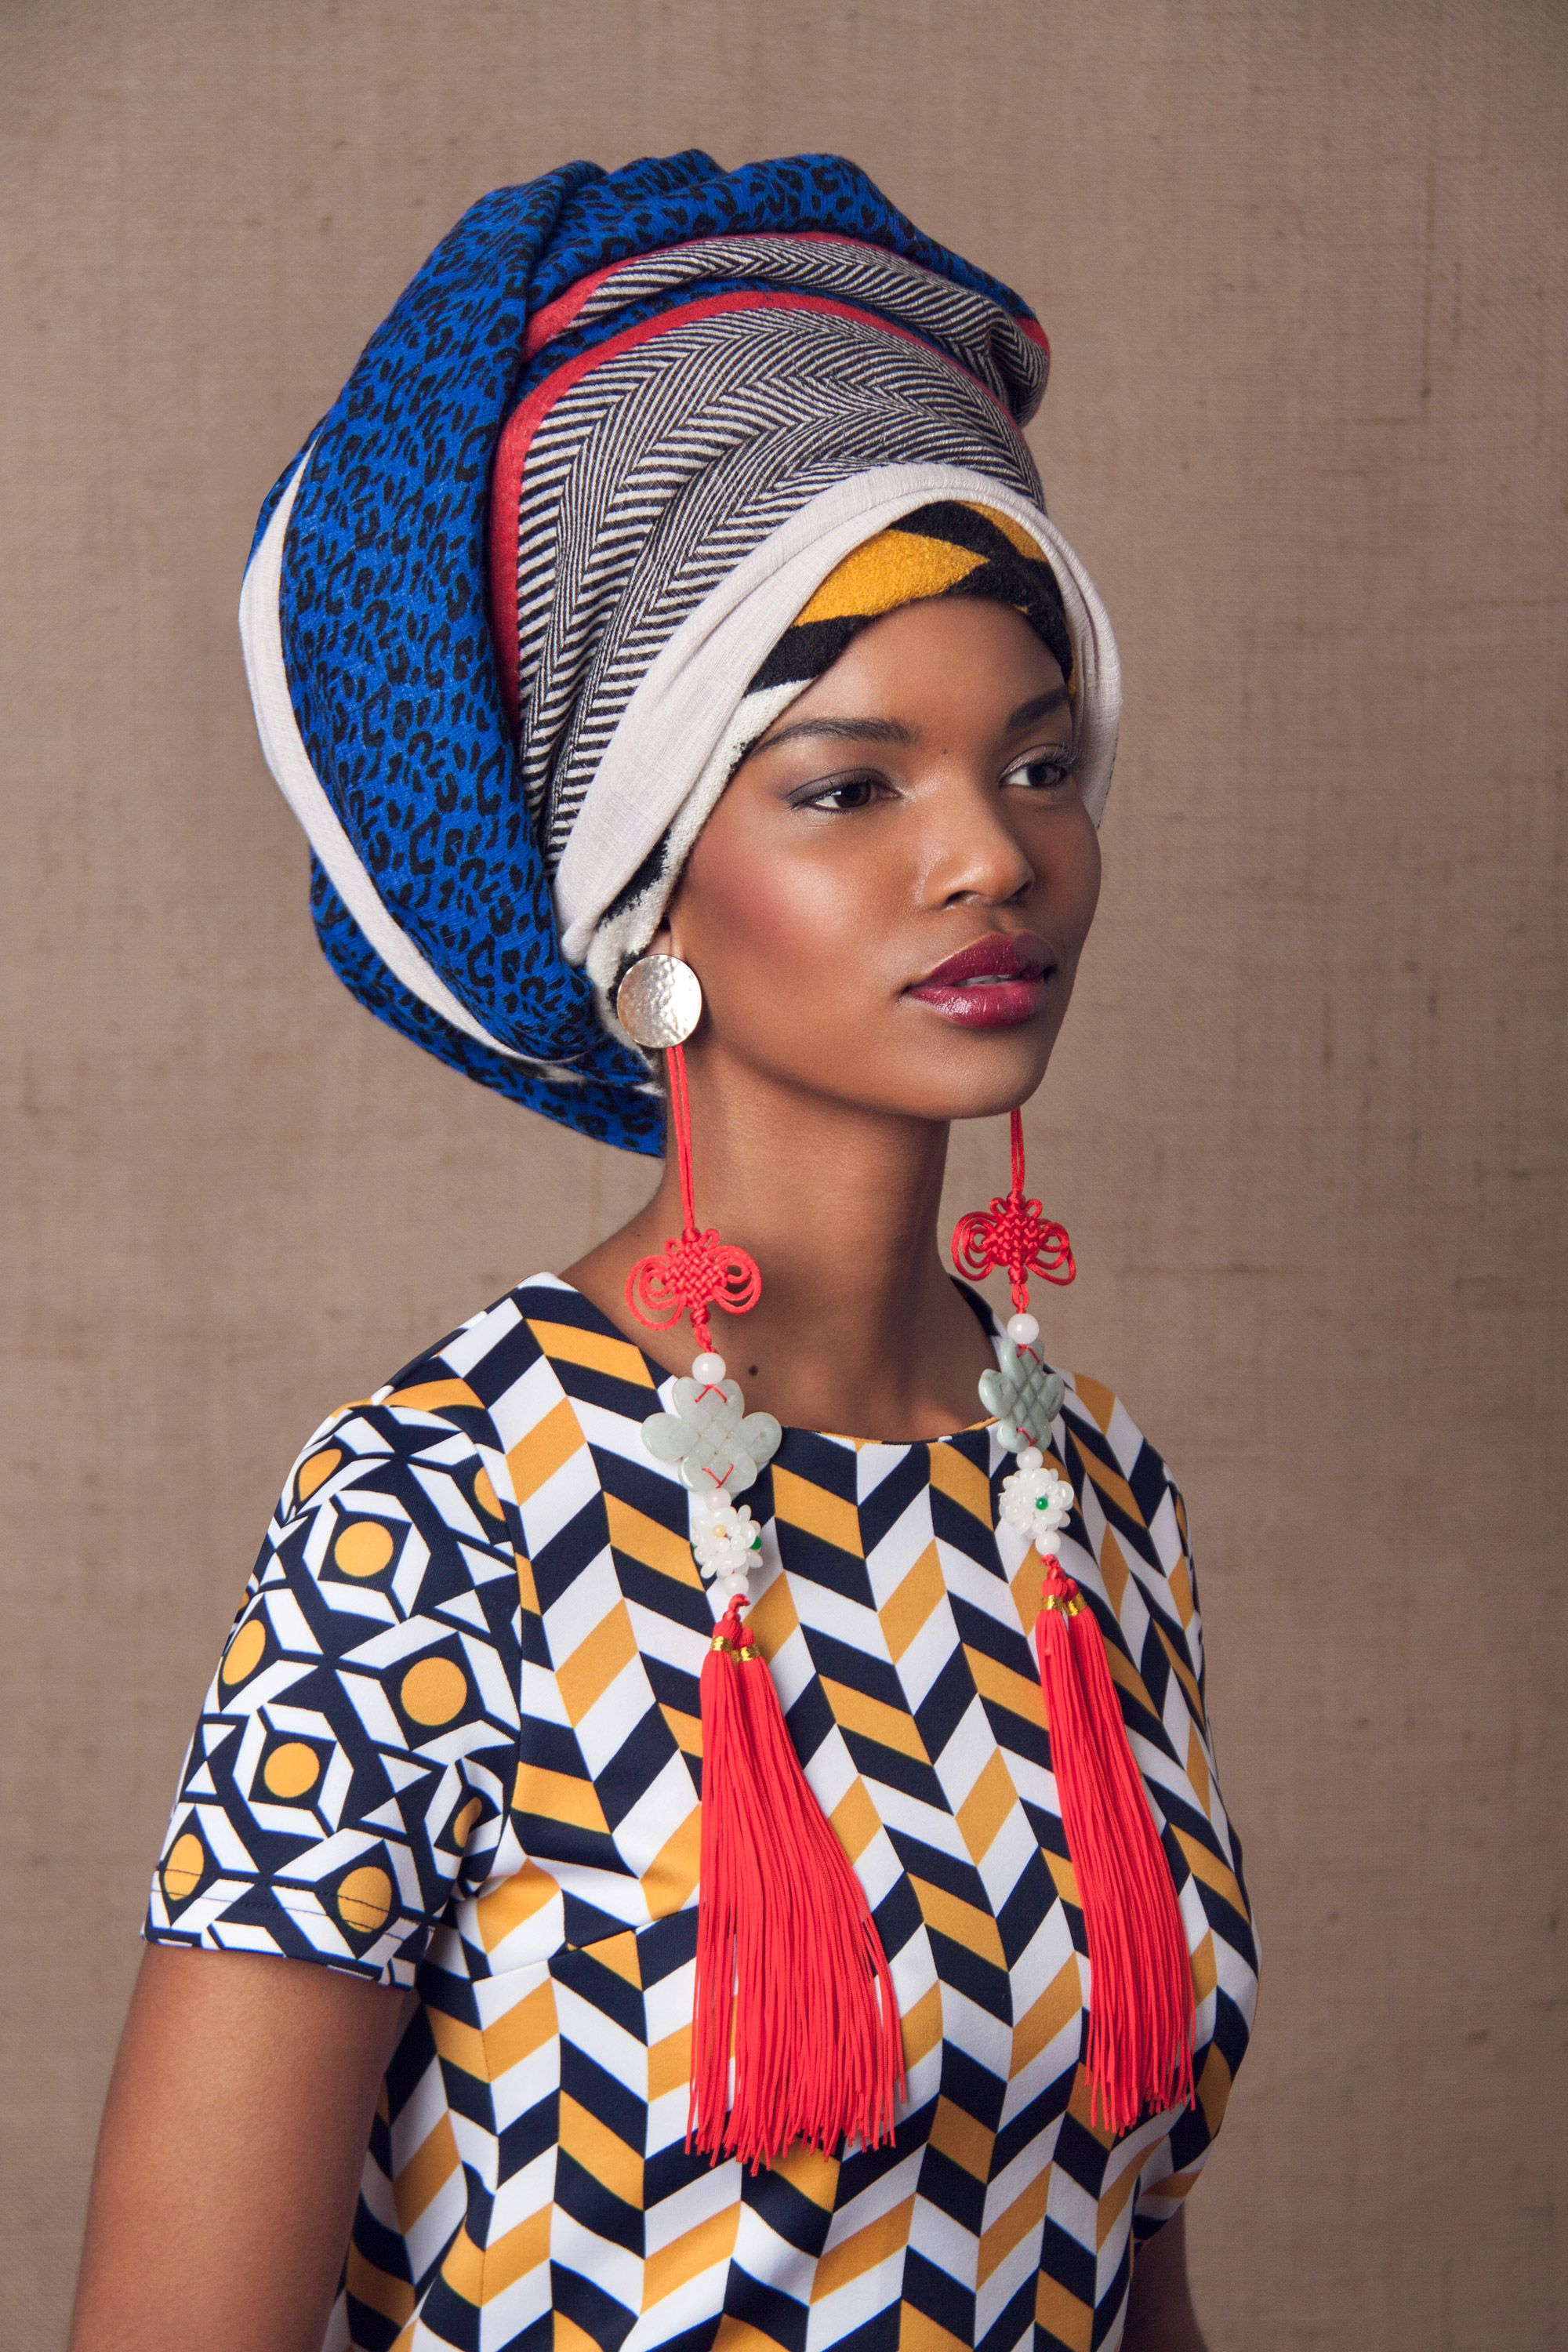 Striking photos of cultural fashions you have to see xhosa head picture of a model wearing a modern xhosa inspired head wrap south africa ccuart Image collections